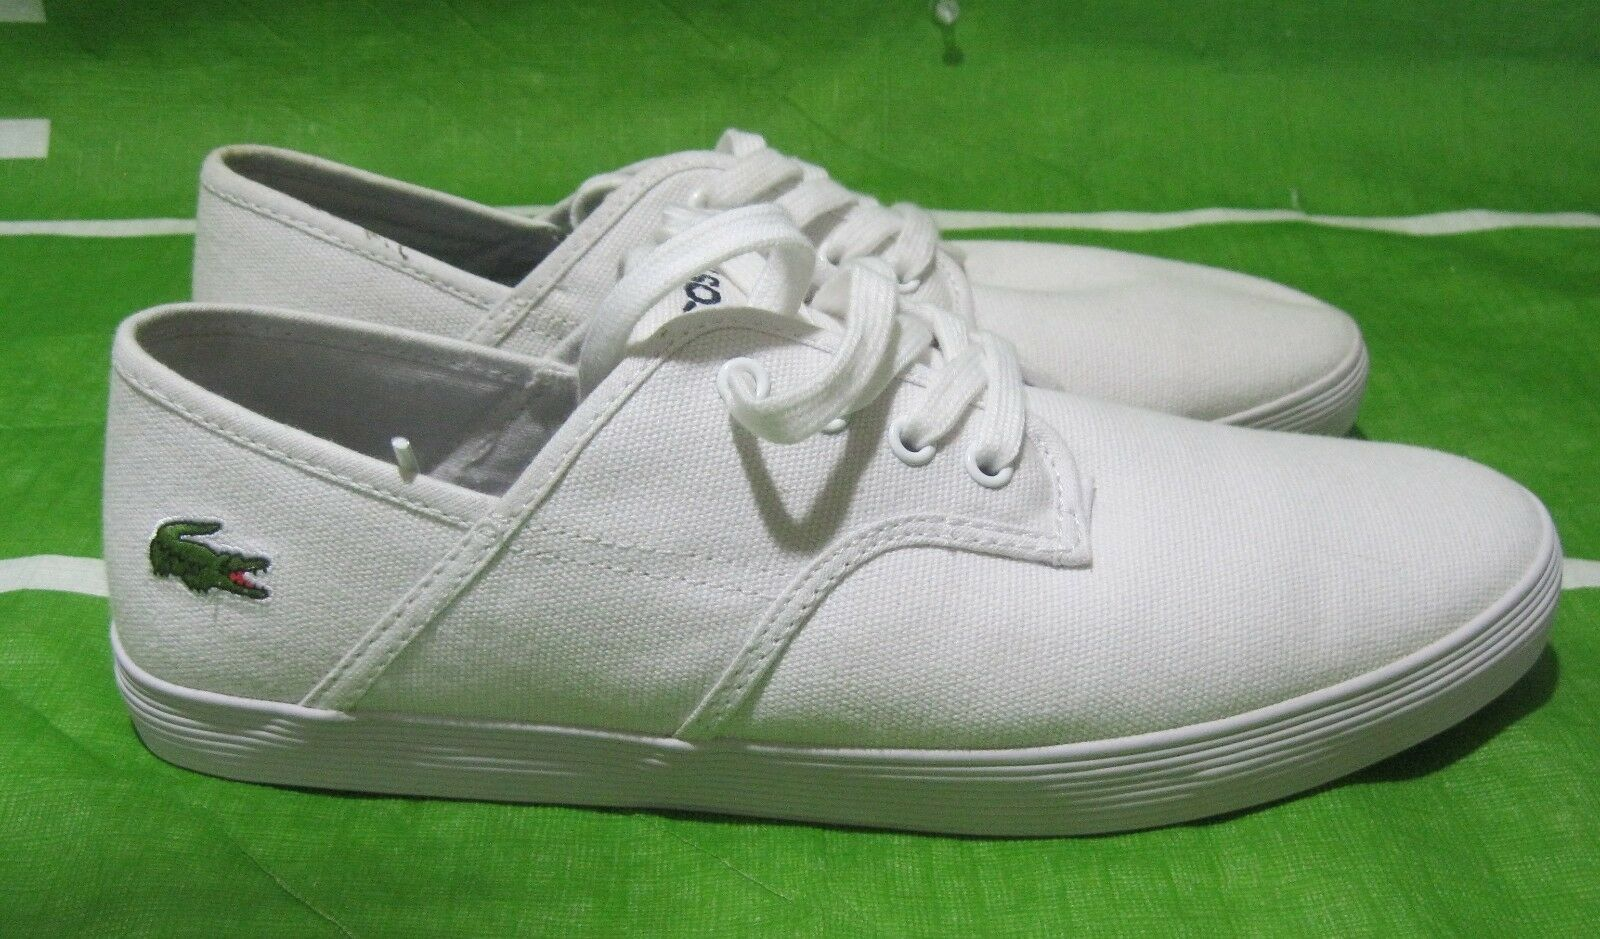 LaCoste Shoes Andover Low Canvas White Sneakers Size 7.5